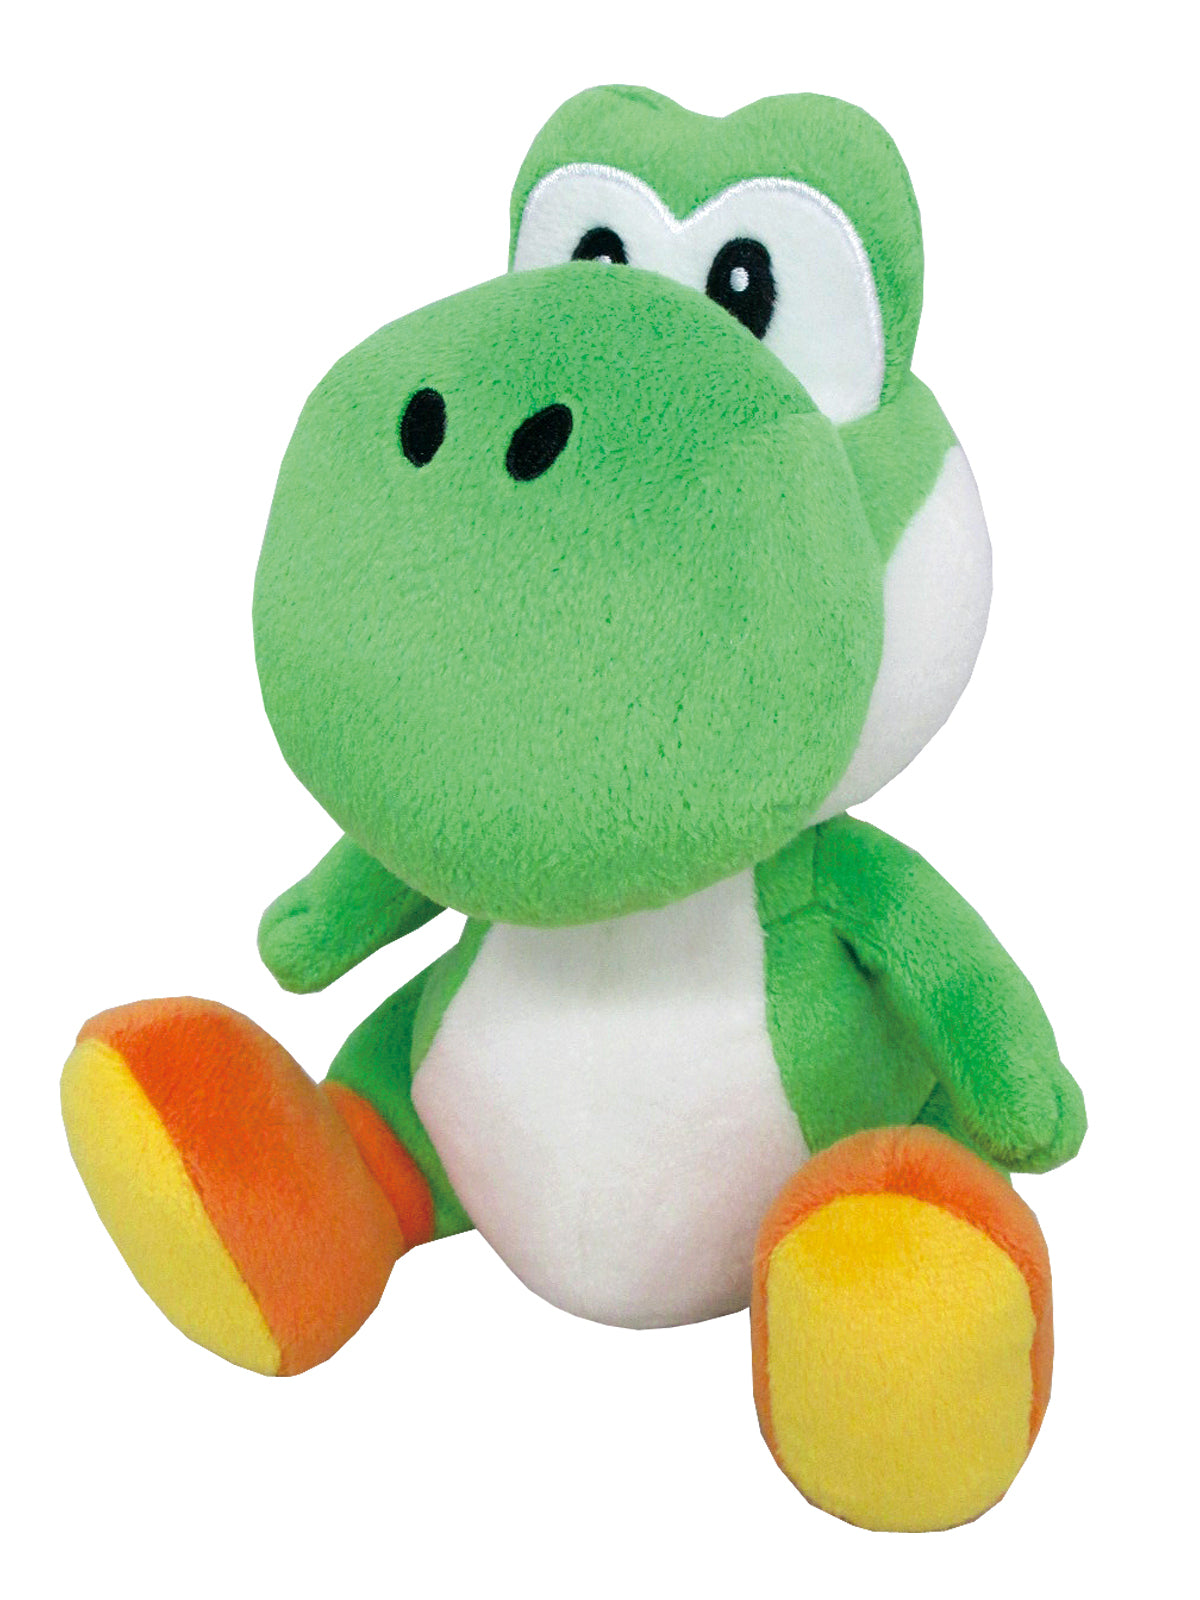 "Little Buddy Yoshi Plush, 8"" Green"